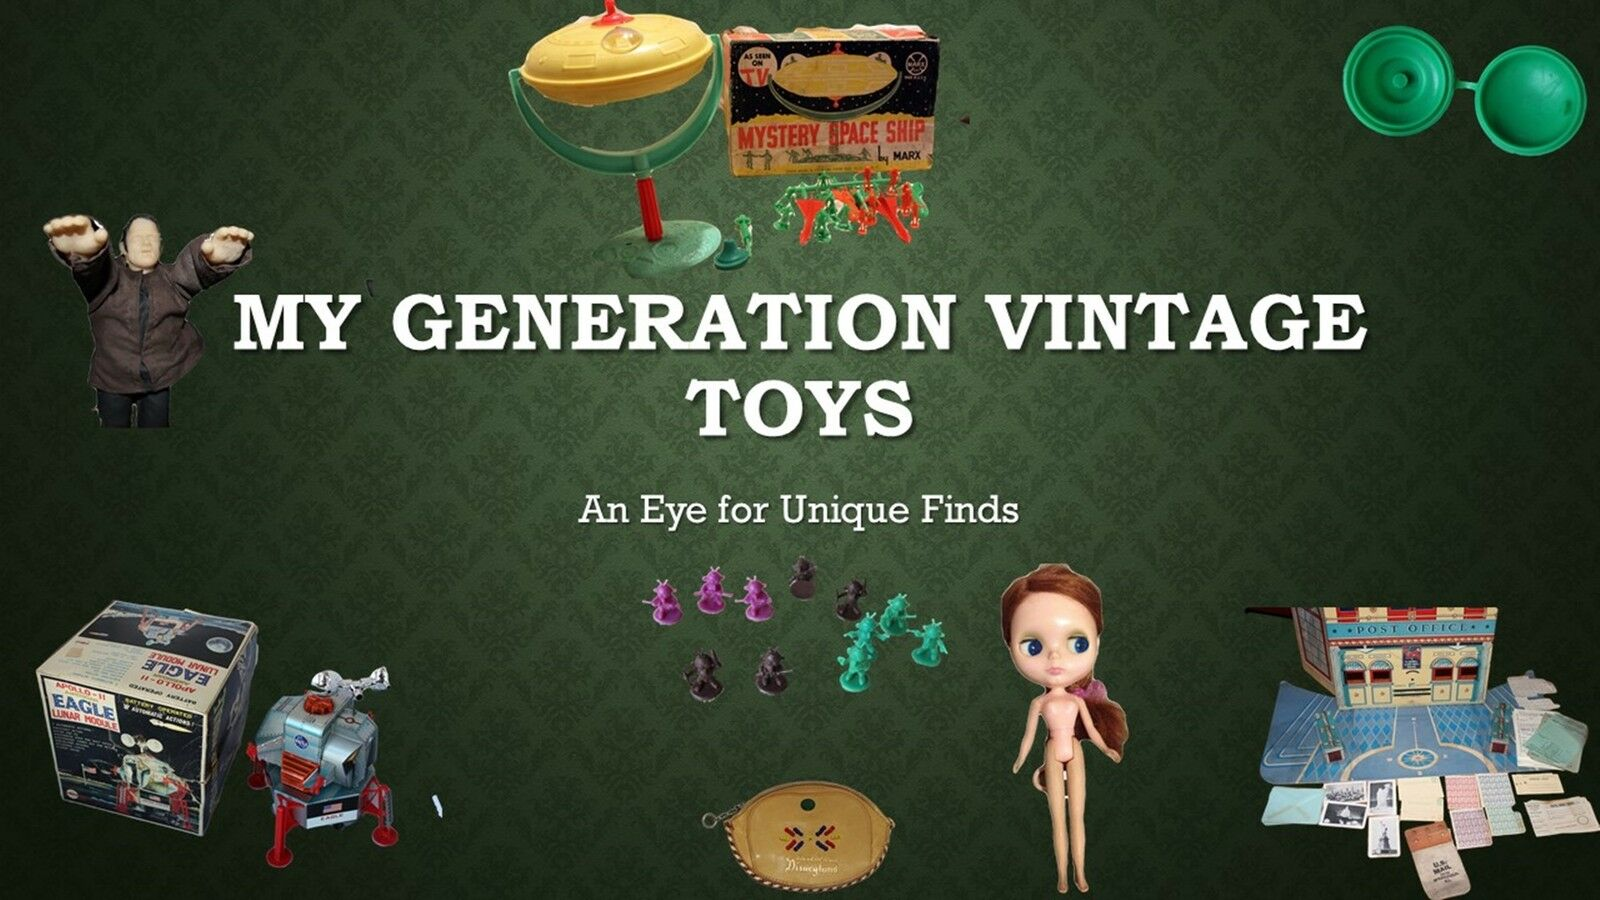 My Generation Vintage Toys